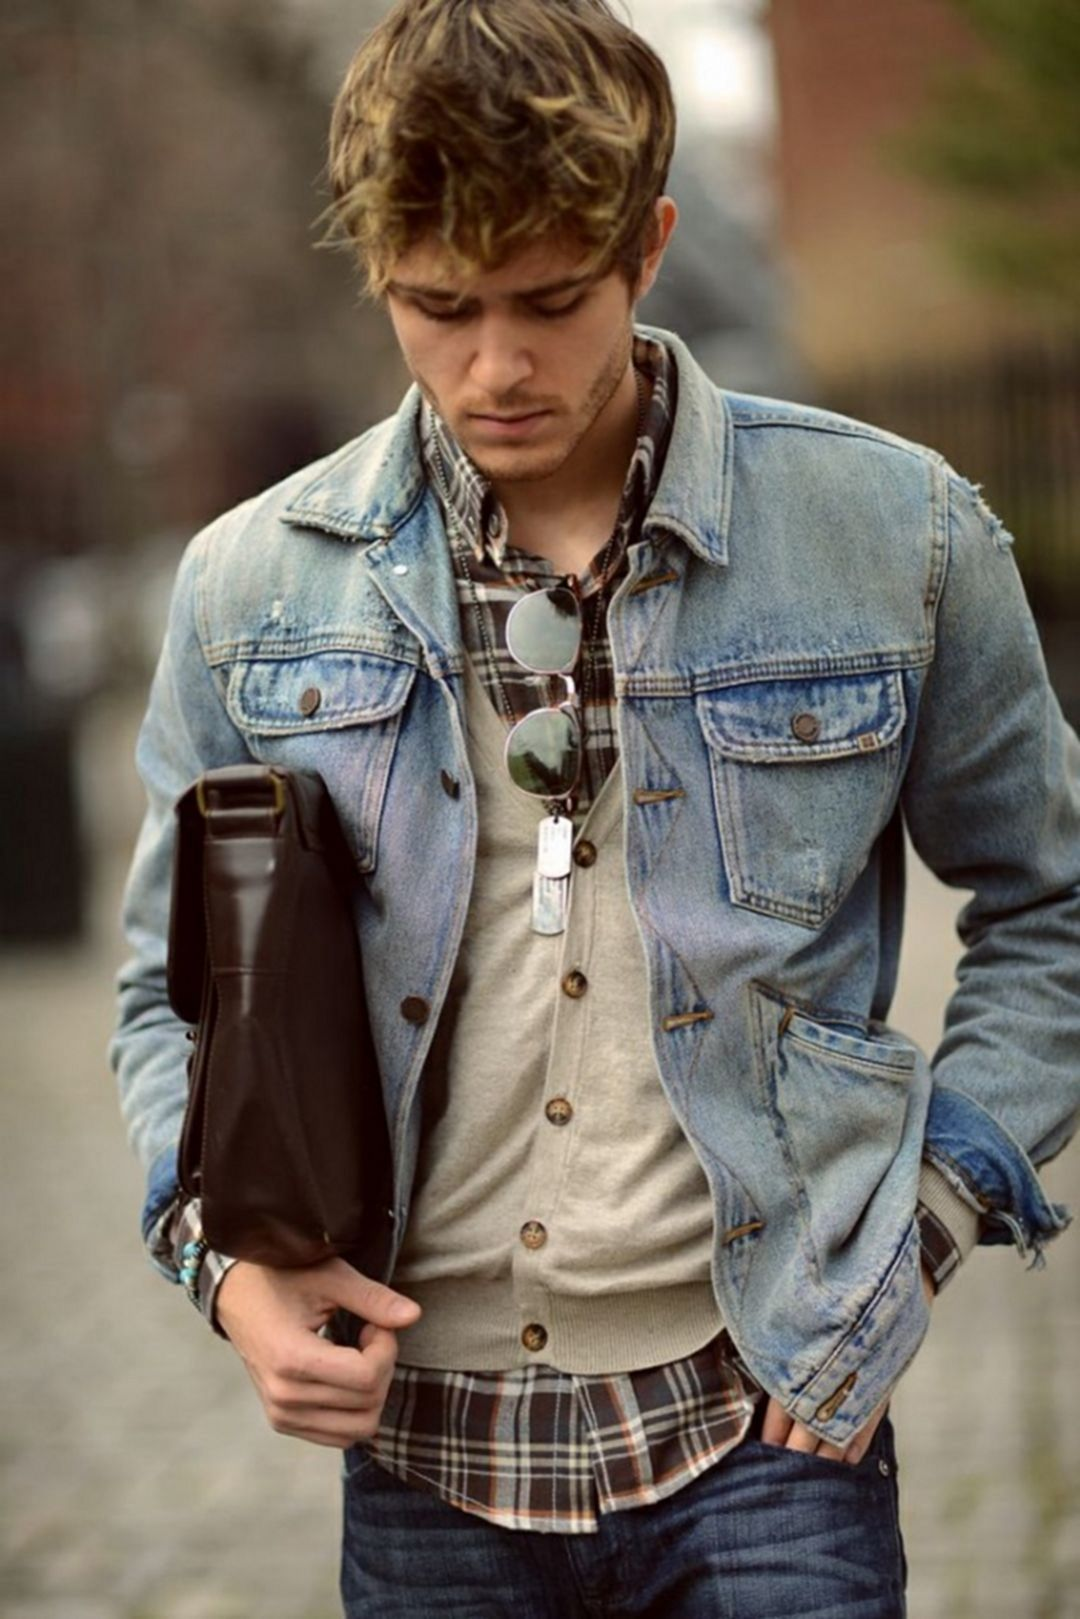 45 Awesome Jeans Jackets Ideas For Men Look Cooler Fashions Nowadays Denim Jacket Fashion Mens Outfits Stylish Men [ 1619 x 1080 Pixel ]